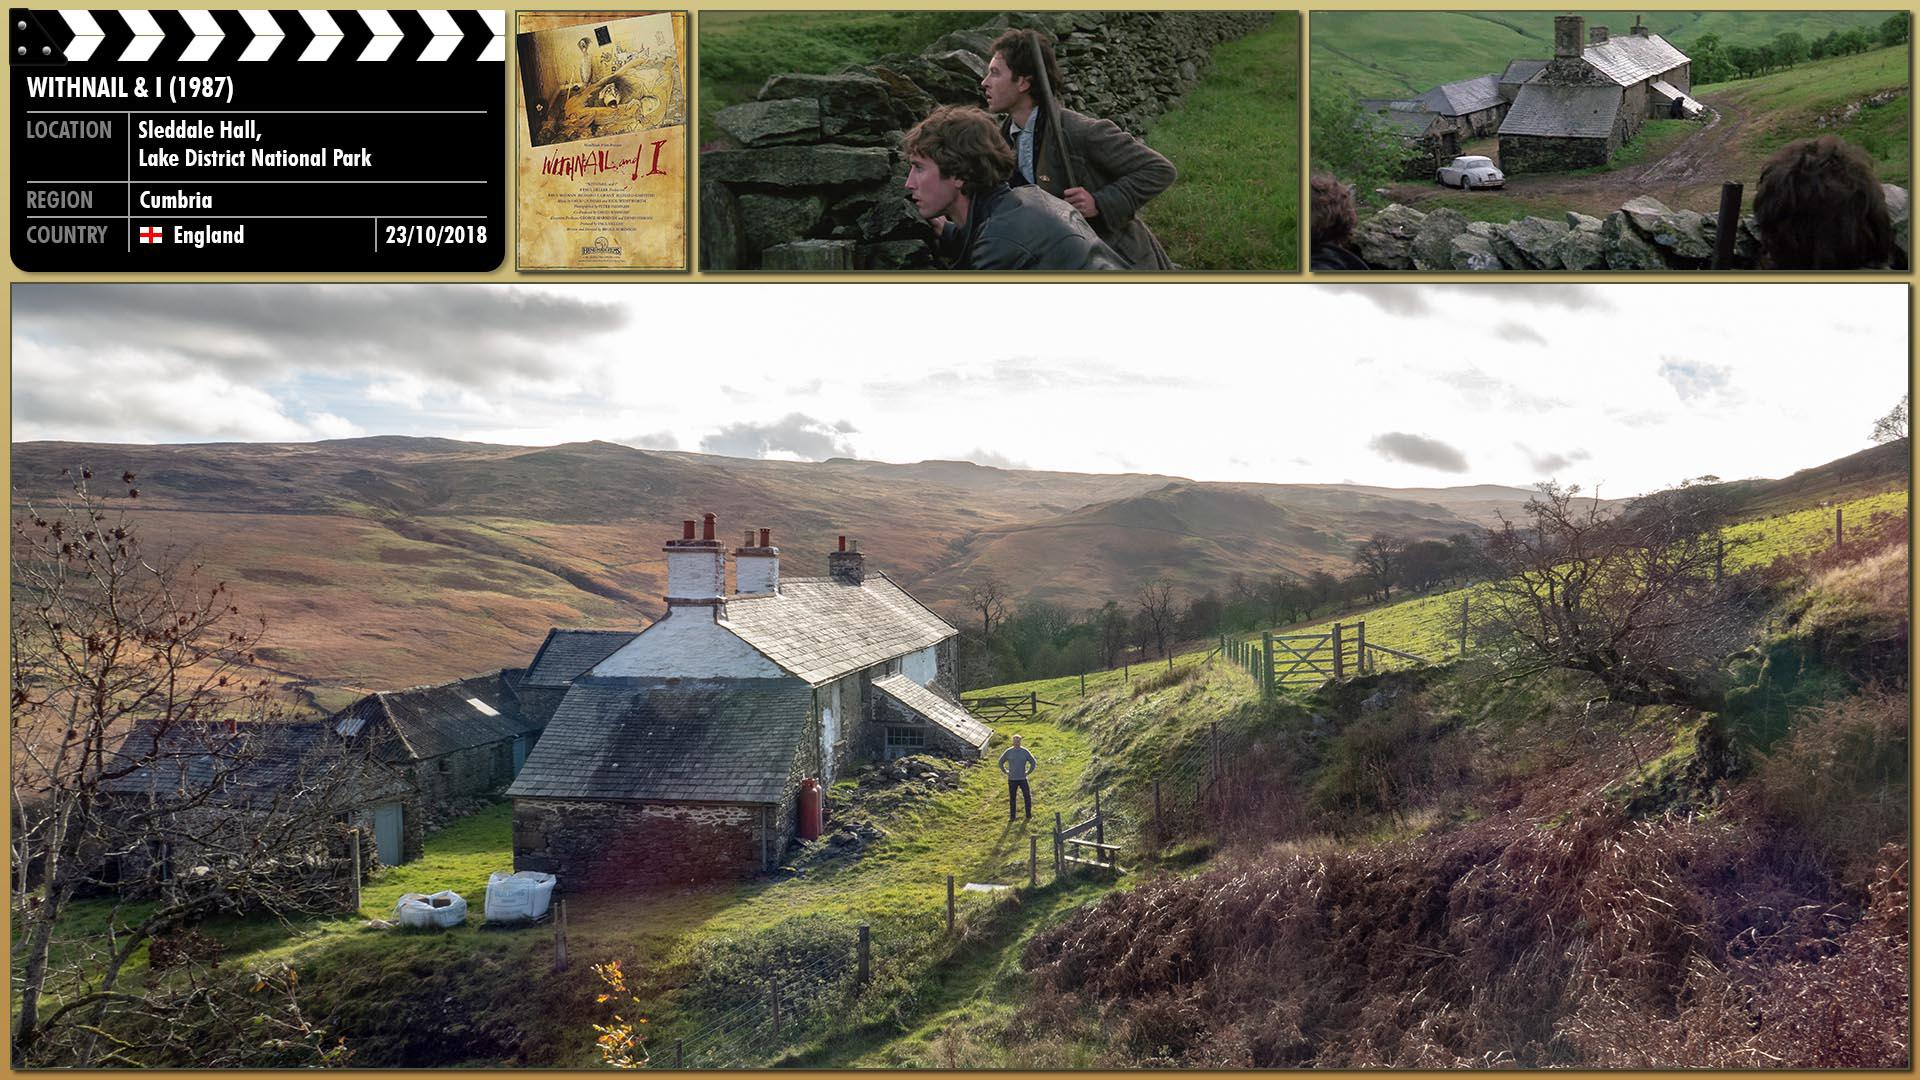 Filming location photo for Withnail & I (1987) 5 of 7